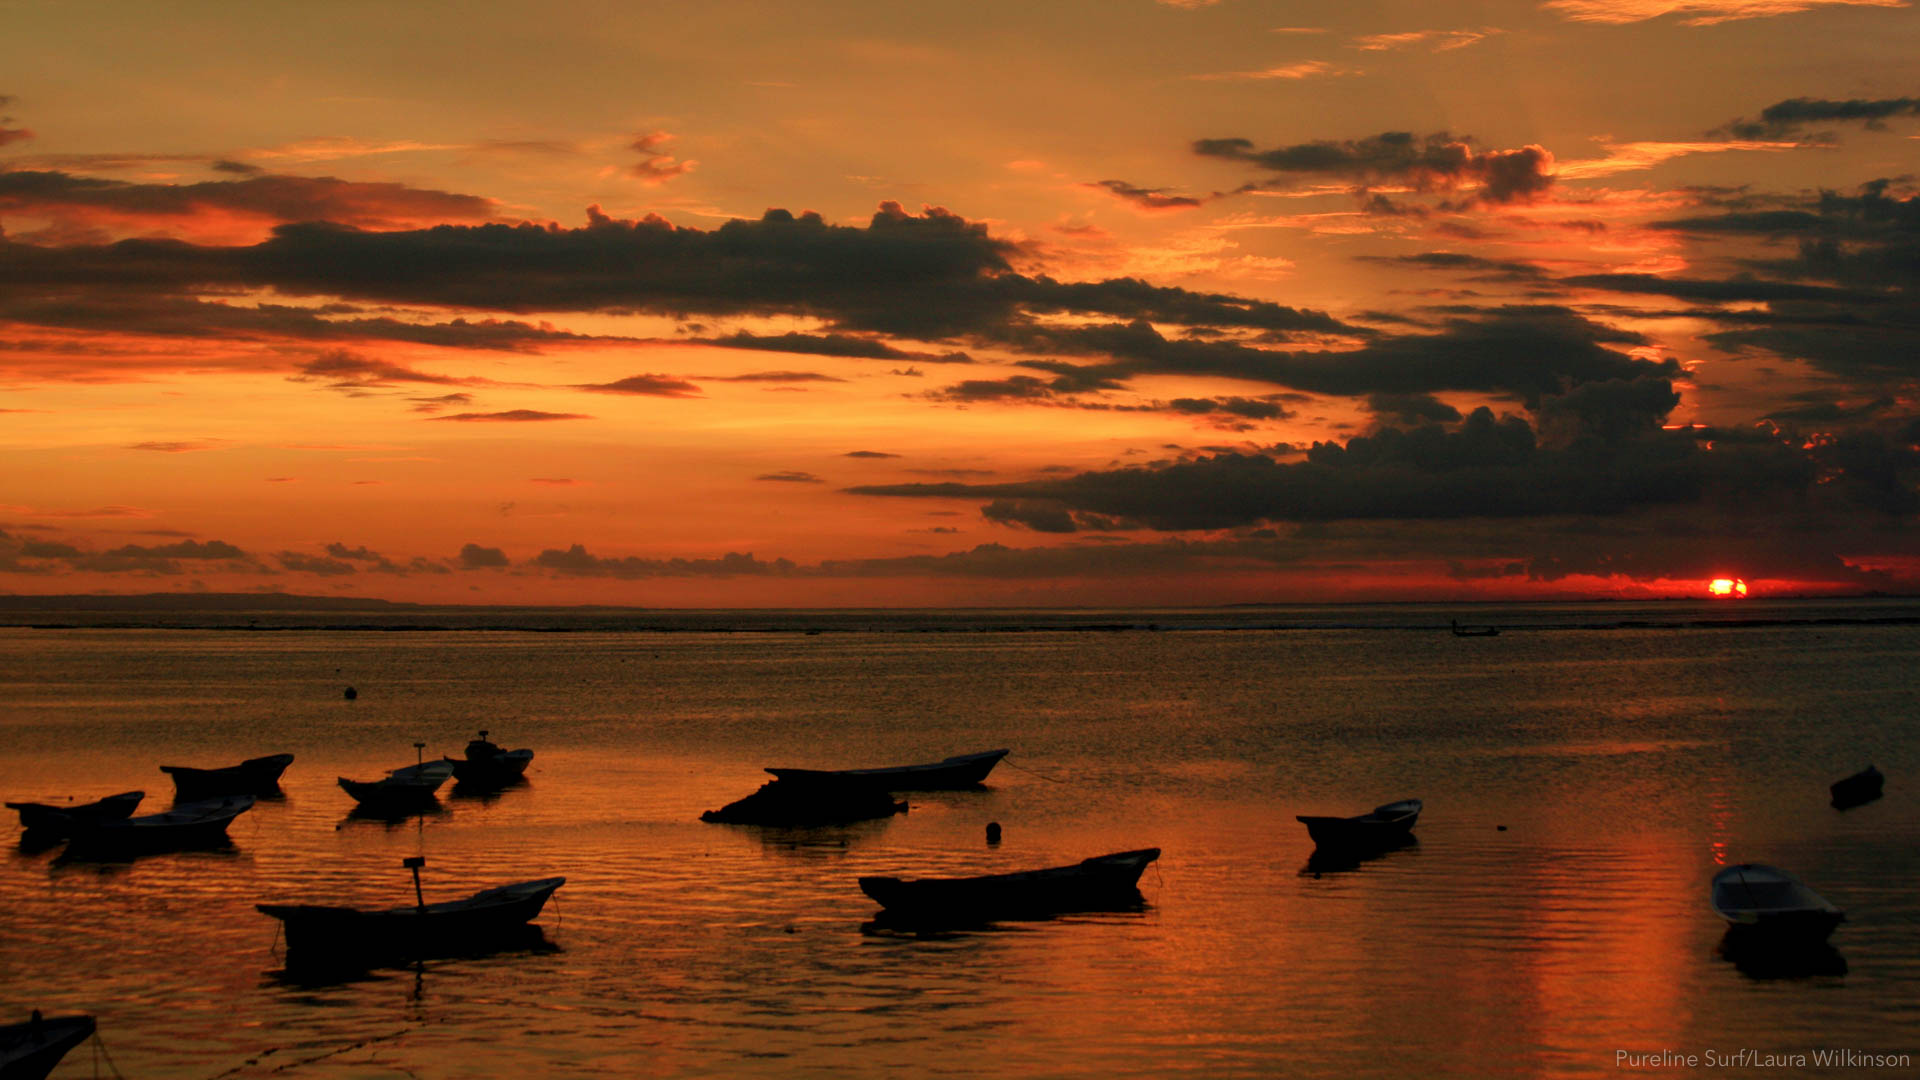 Boats at sunset in Nusa Lembongan, Bali. Another great location we enjoy on our worldwide surf coaching trips with Pureline Surf.